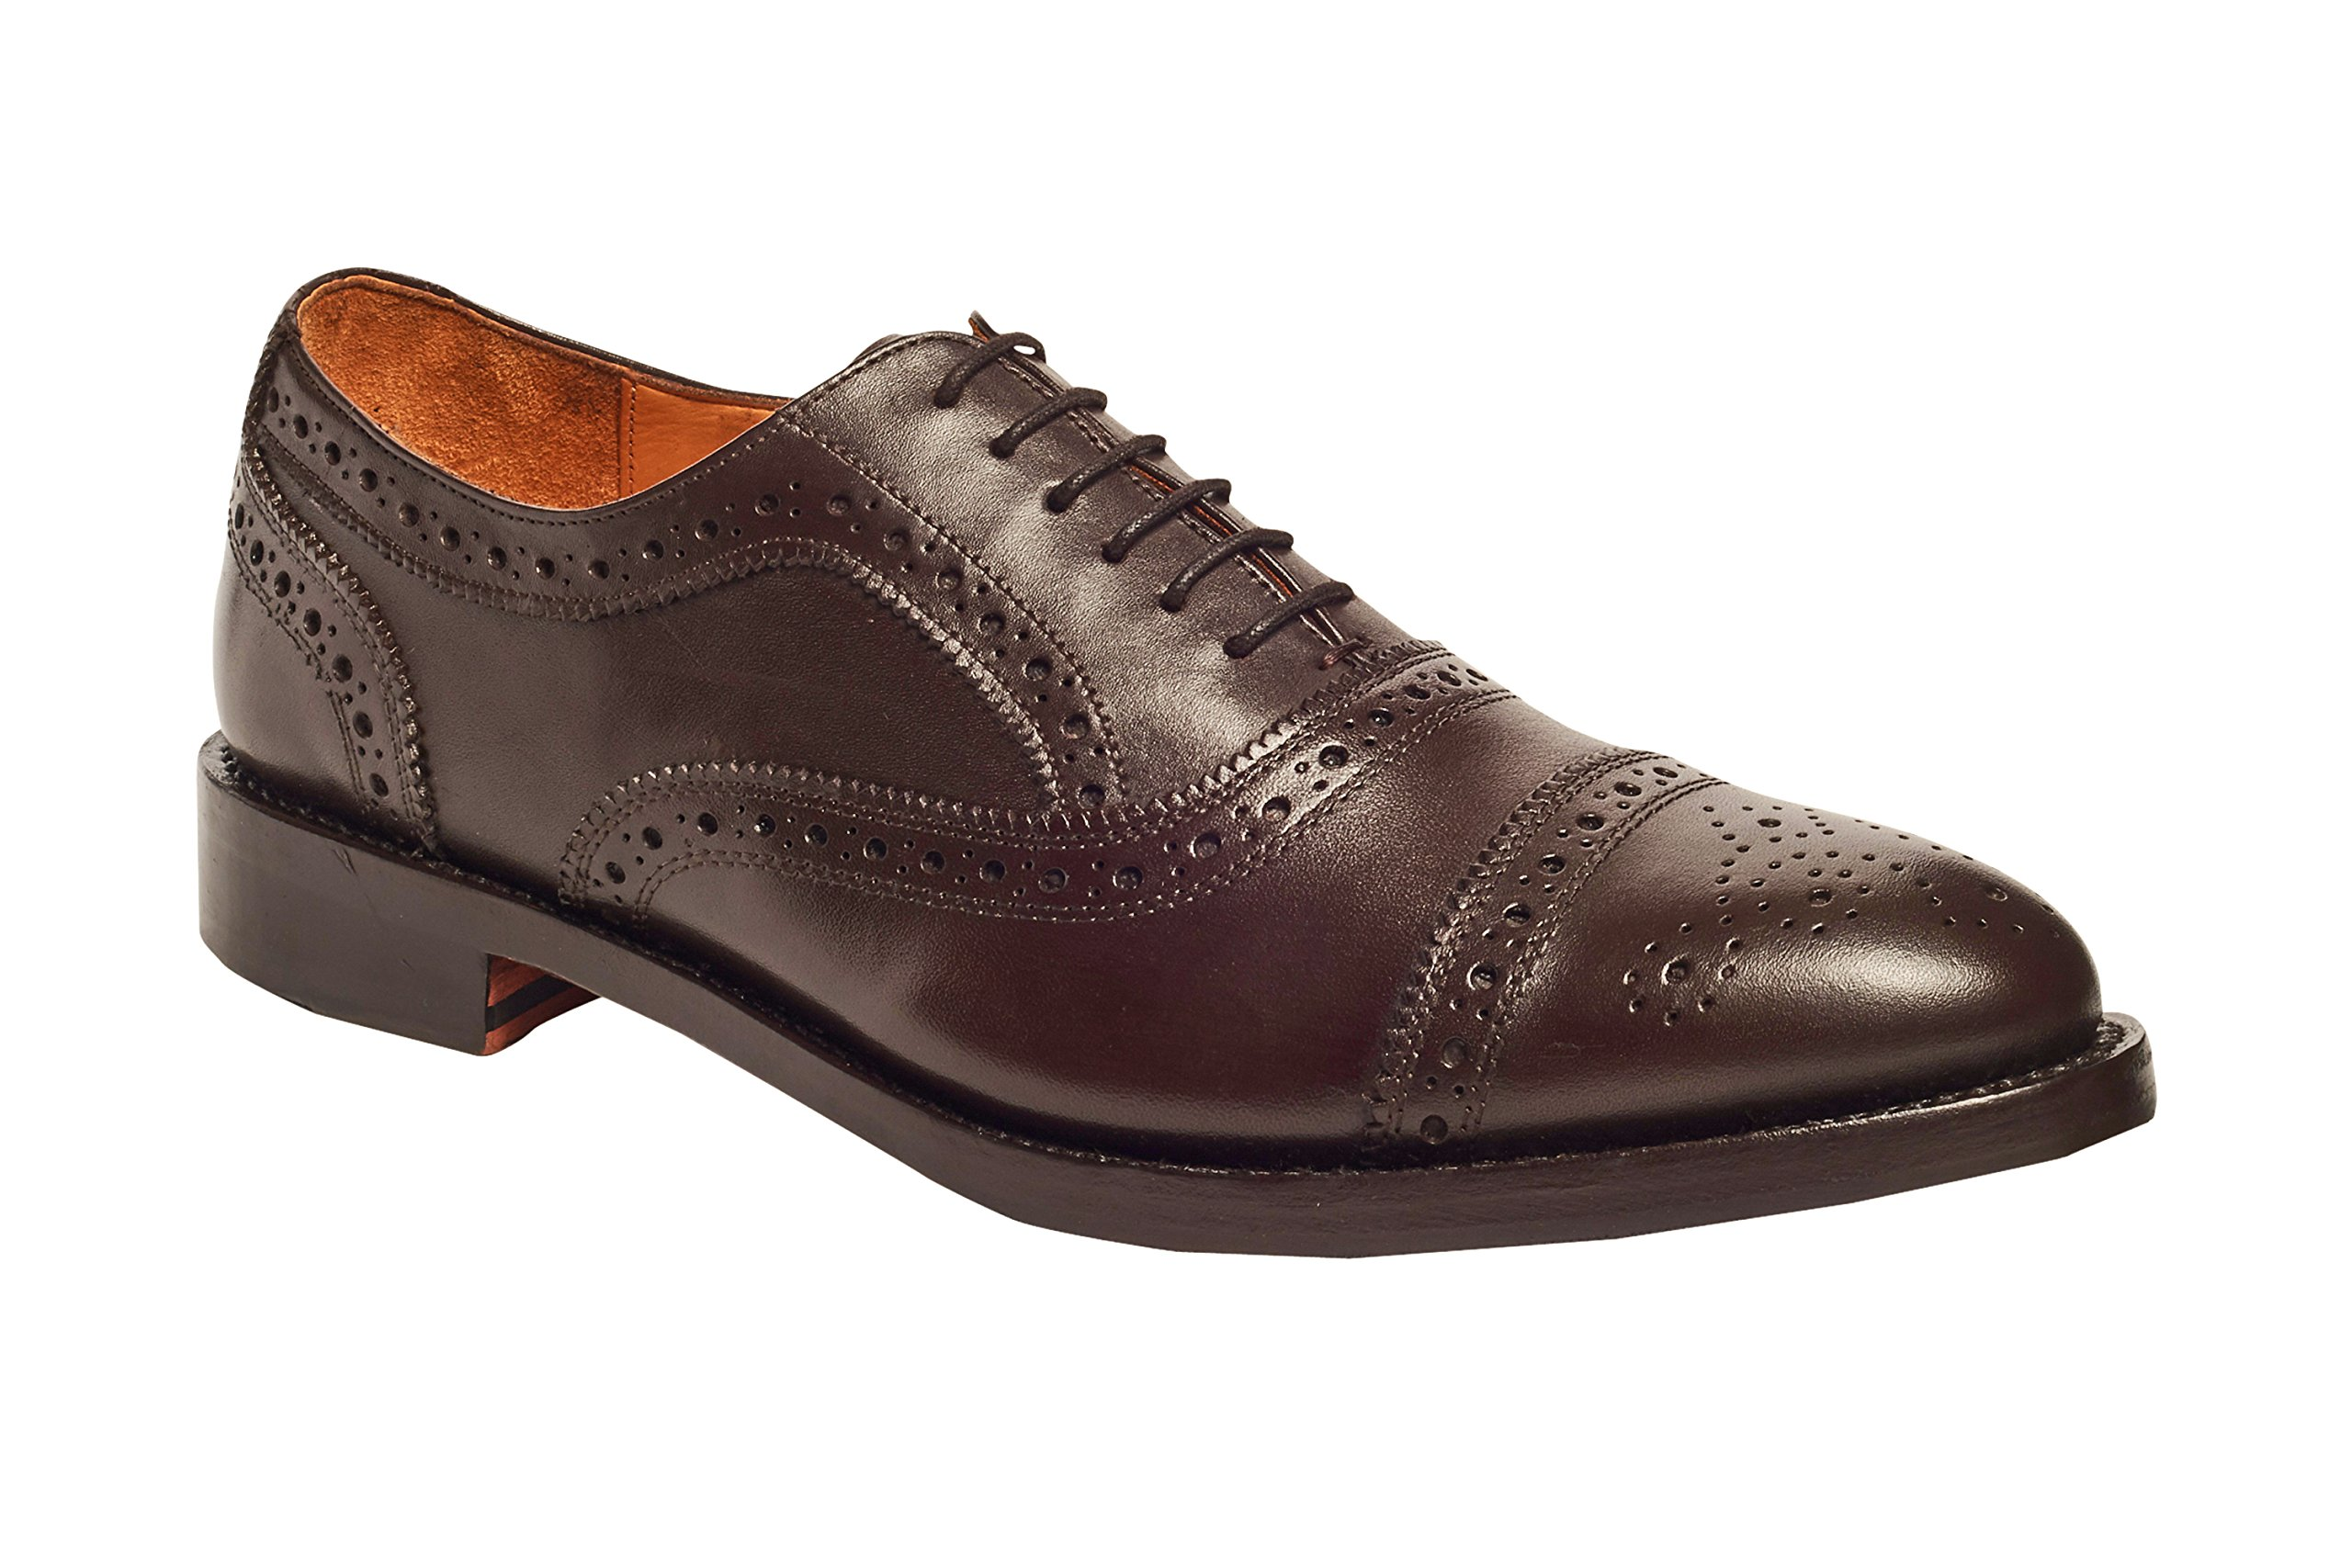 Anthony Veer Mens Ford Oxford Semi Brogue Leather Shoes in Goodyear Welted Construction (11.5 D, Brown)